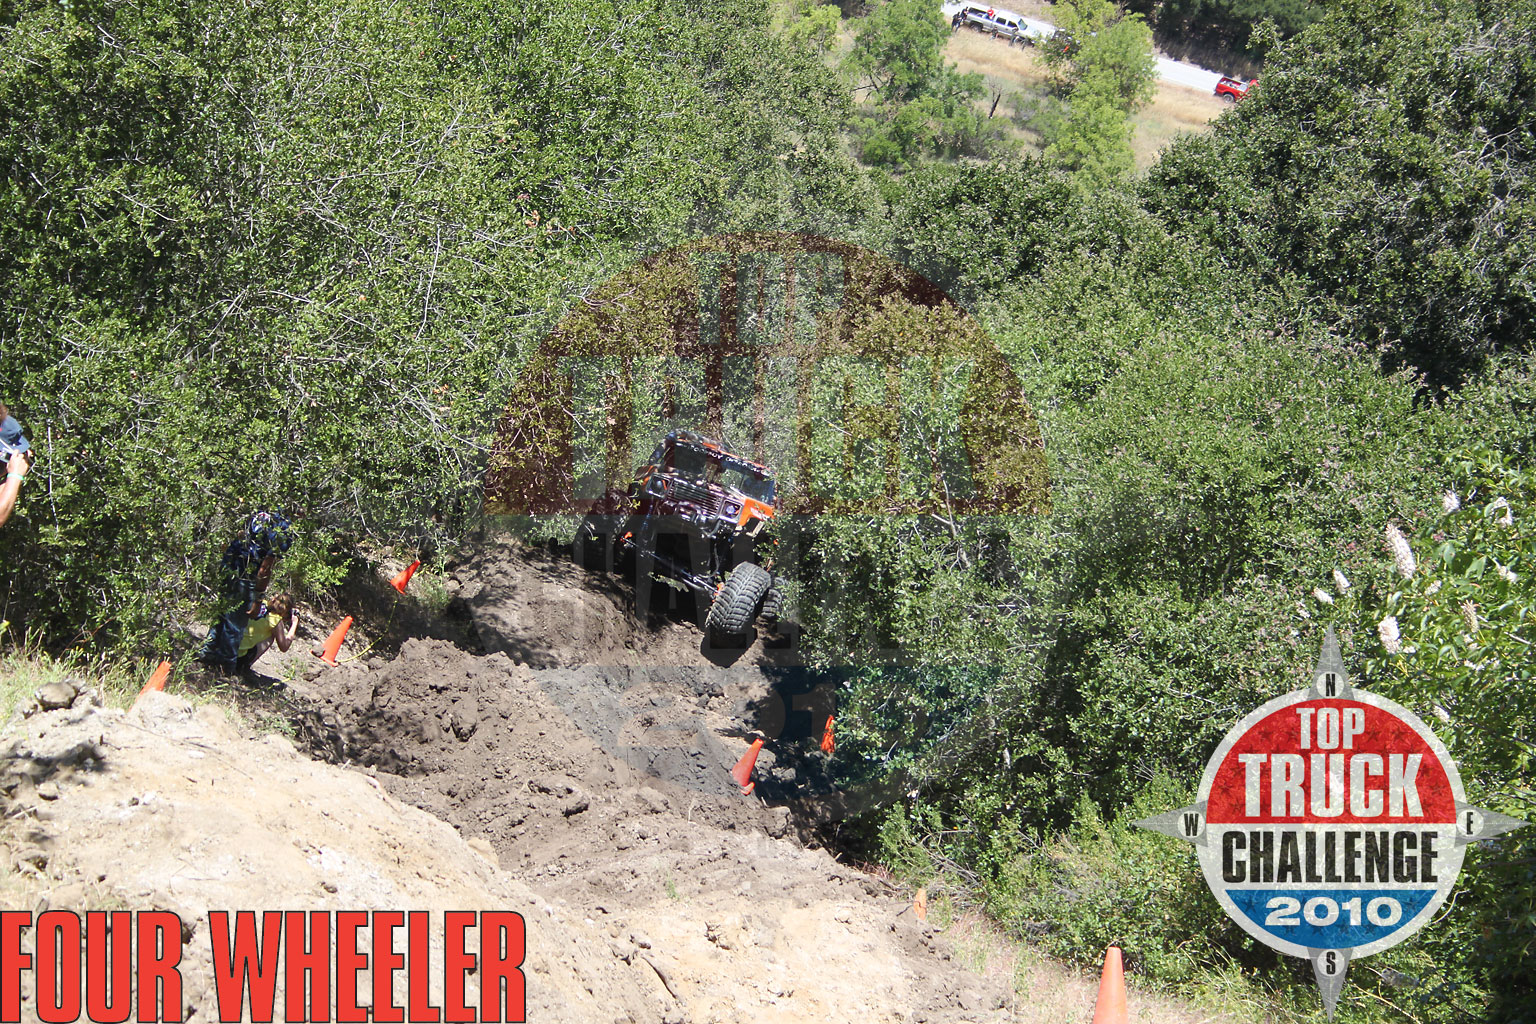 2010 Top Truck Challenge Hill Climb Jason Gray 1975 Chevy Blazer